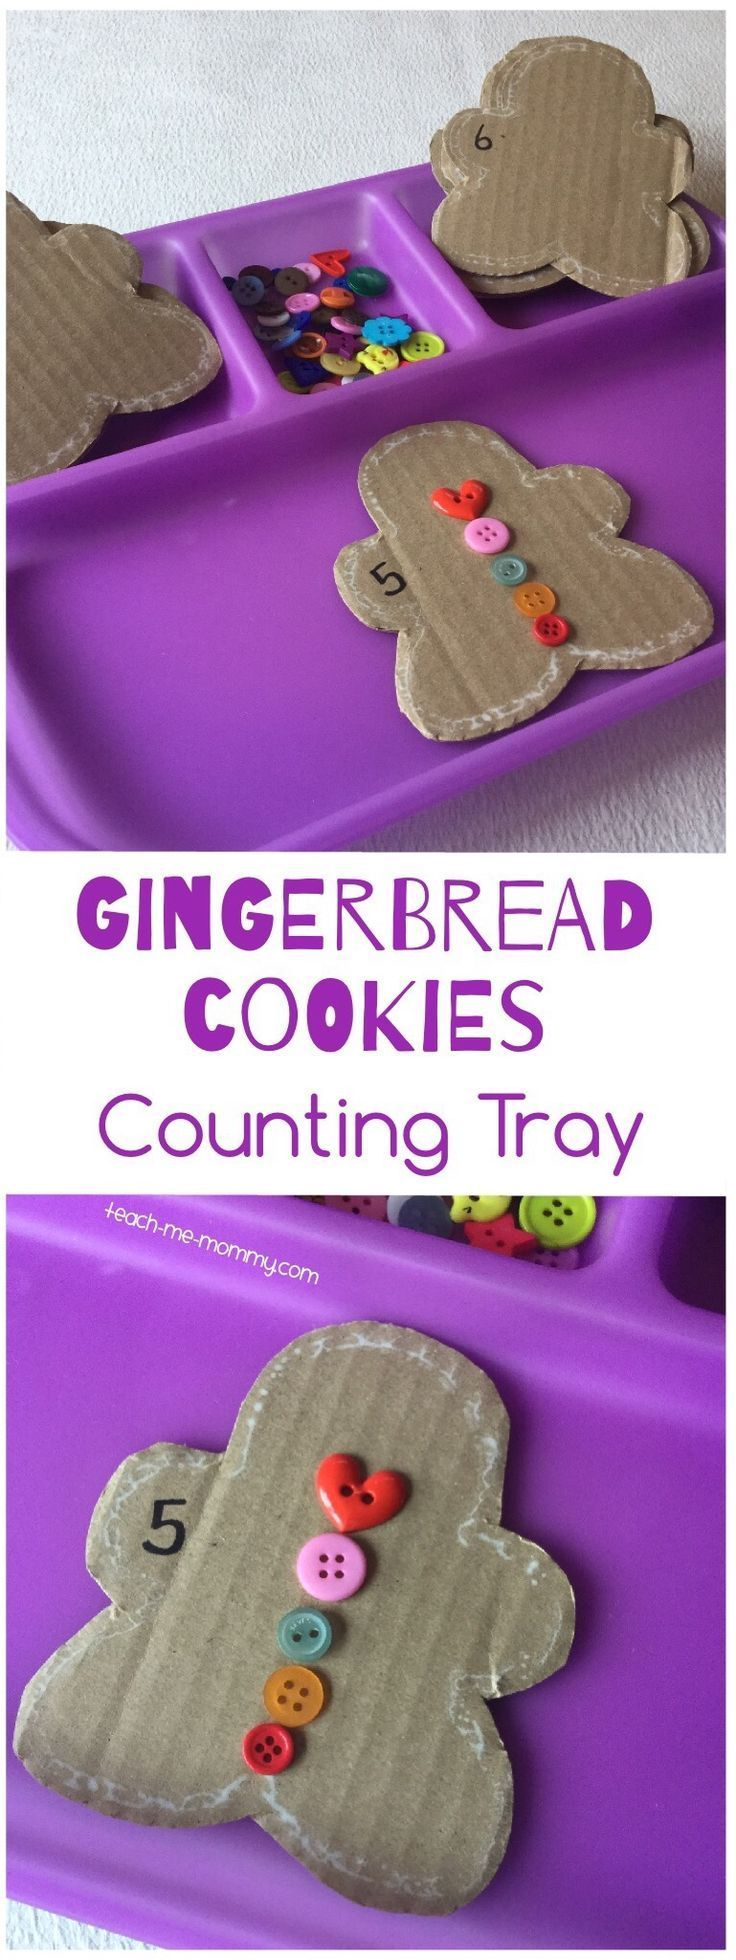 Gingerbread Cookies Counting, made from cardboard box!